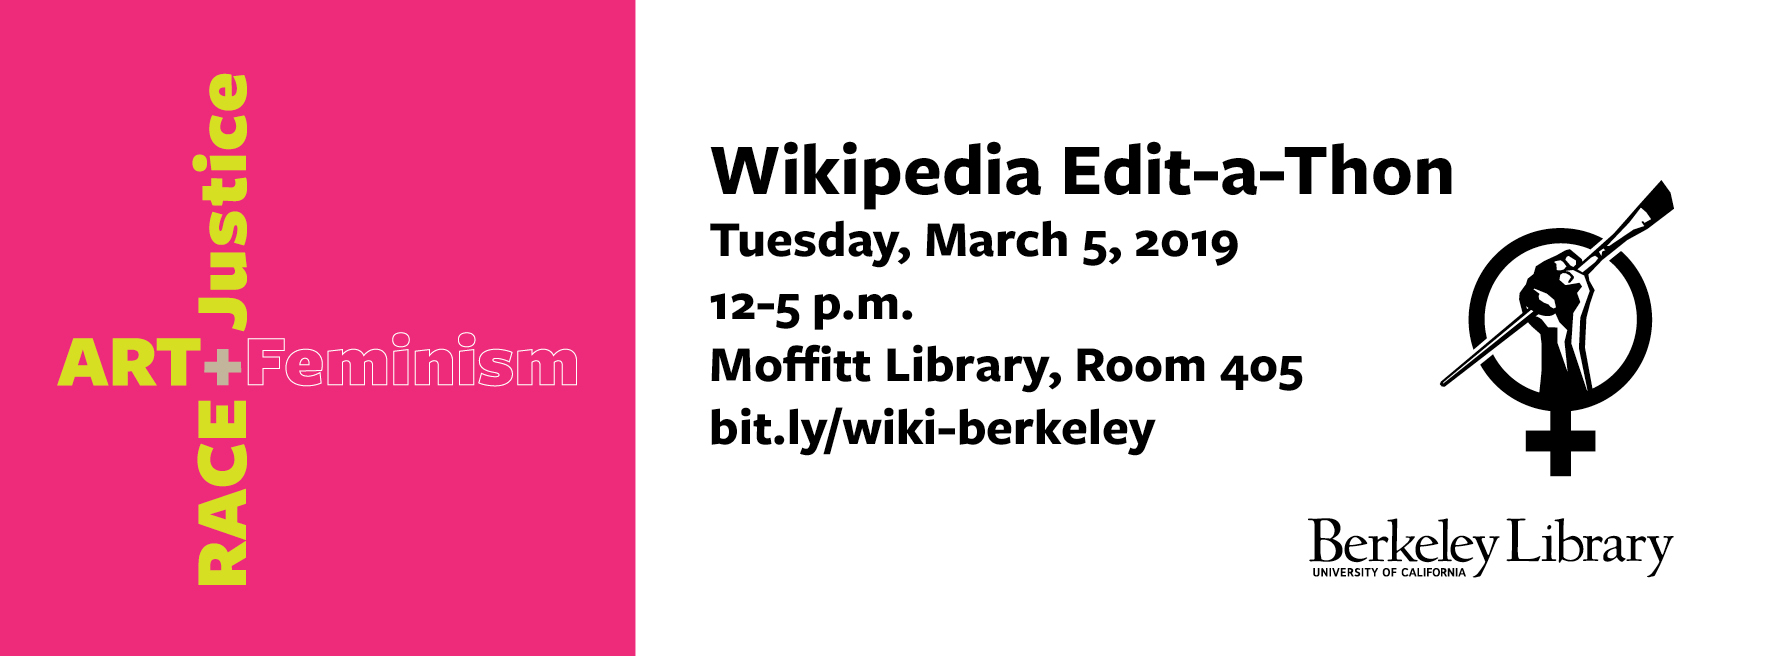 Library Wikimedia Poster